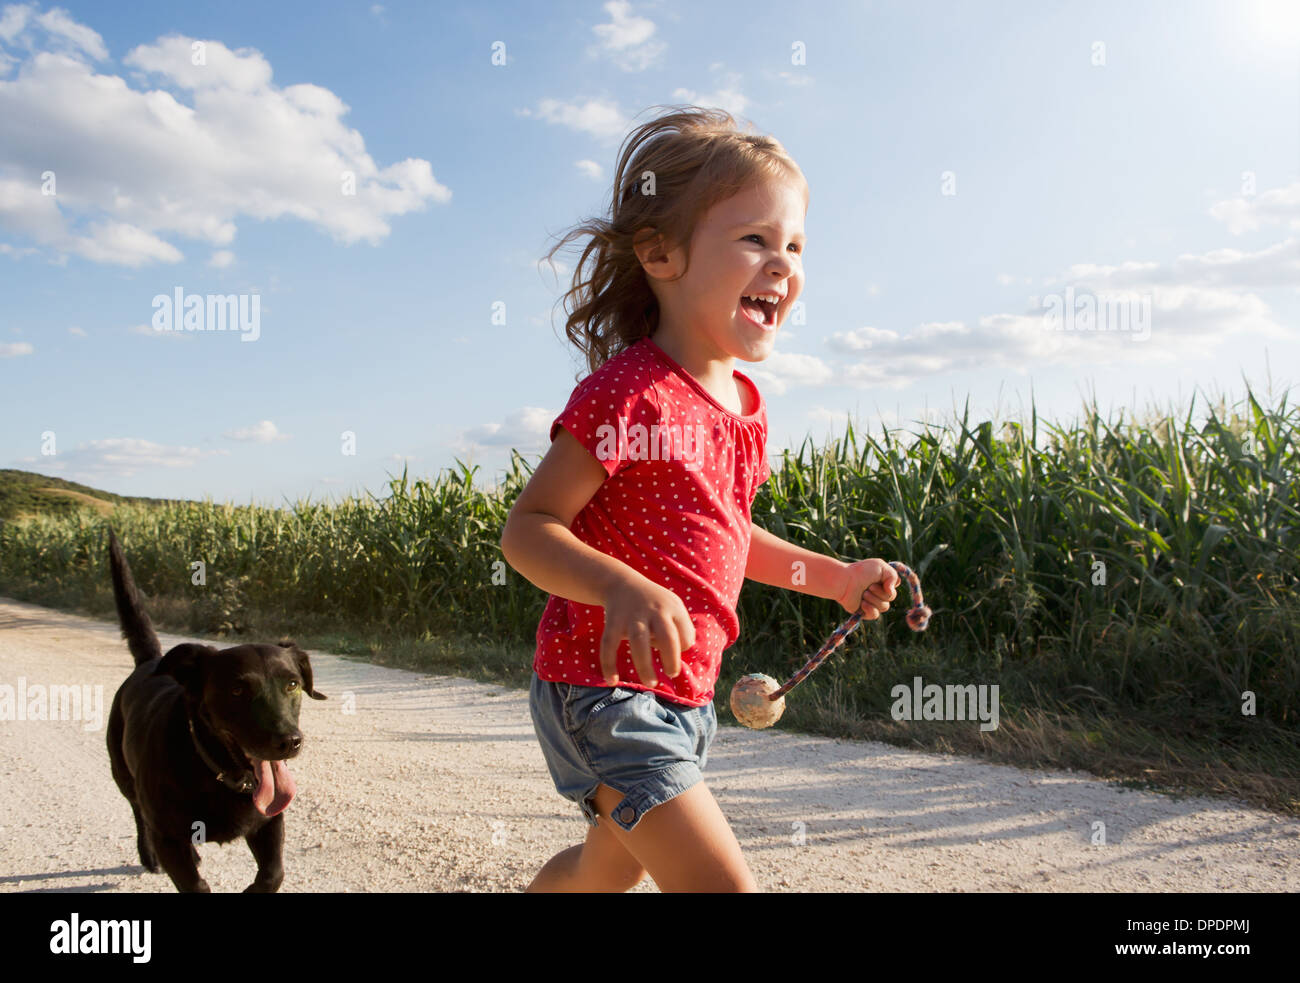 Girl and dog running through field - Stock Image